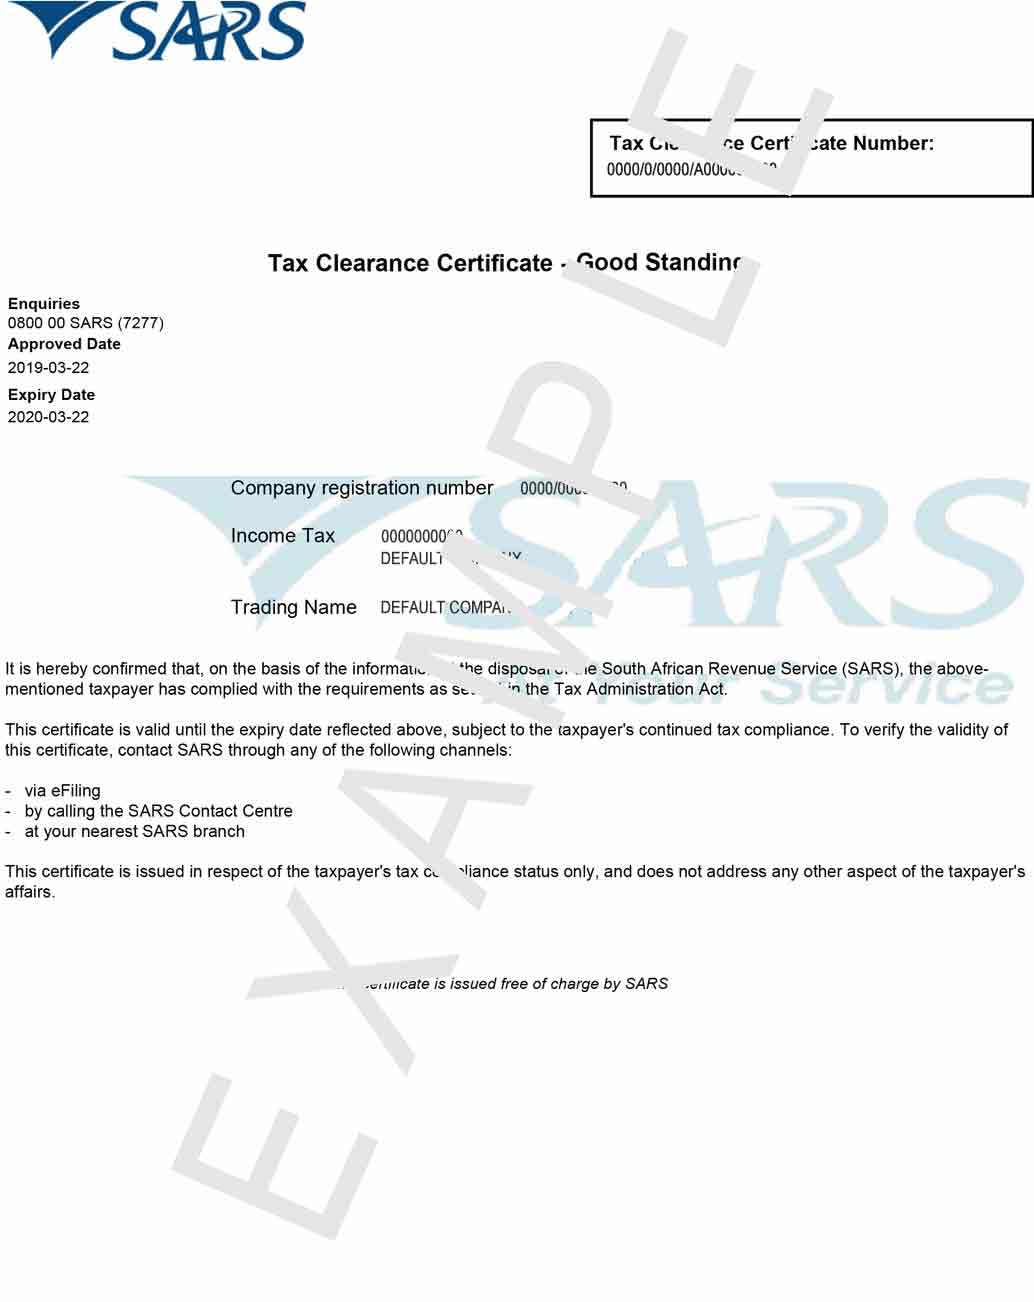 Printed Tax Clearance Certificate Terminated